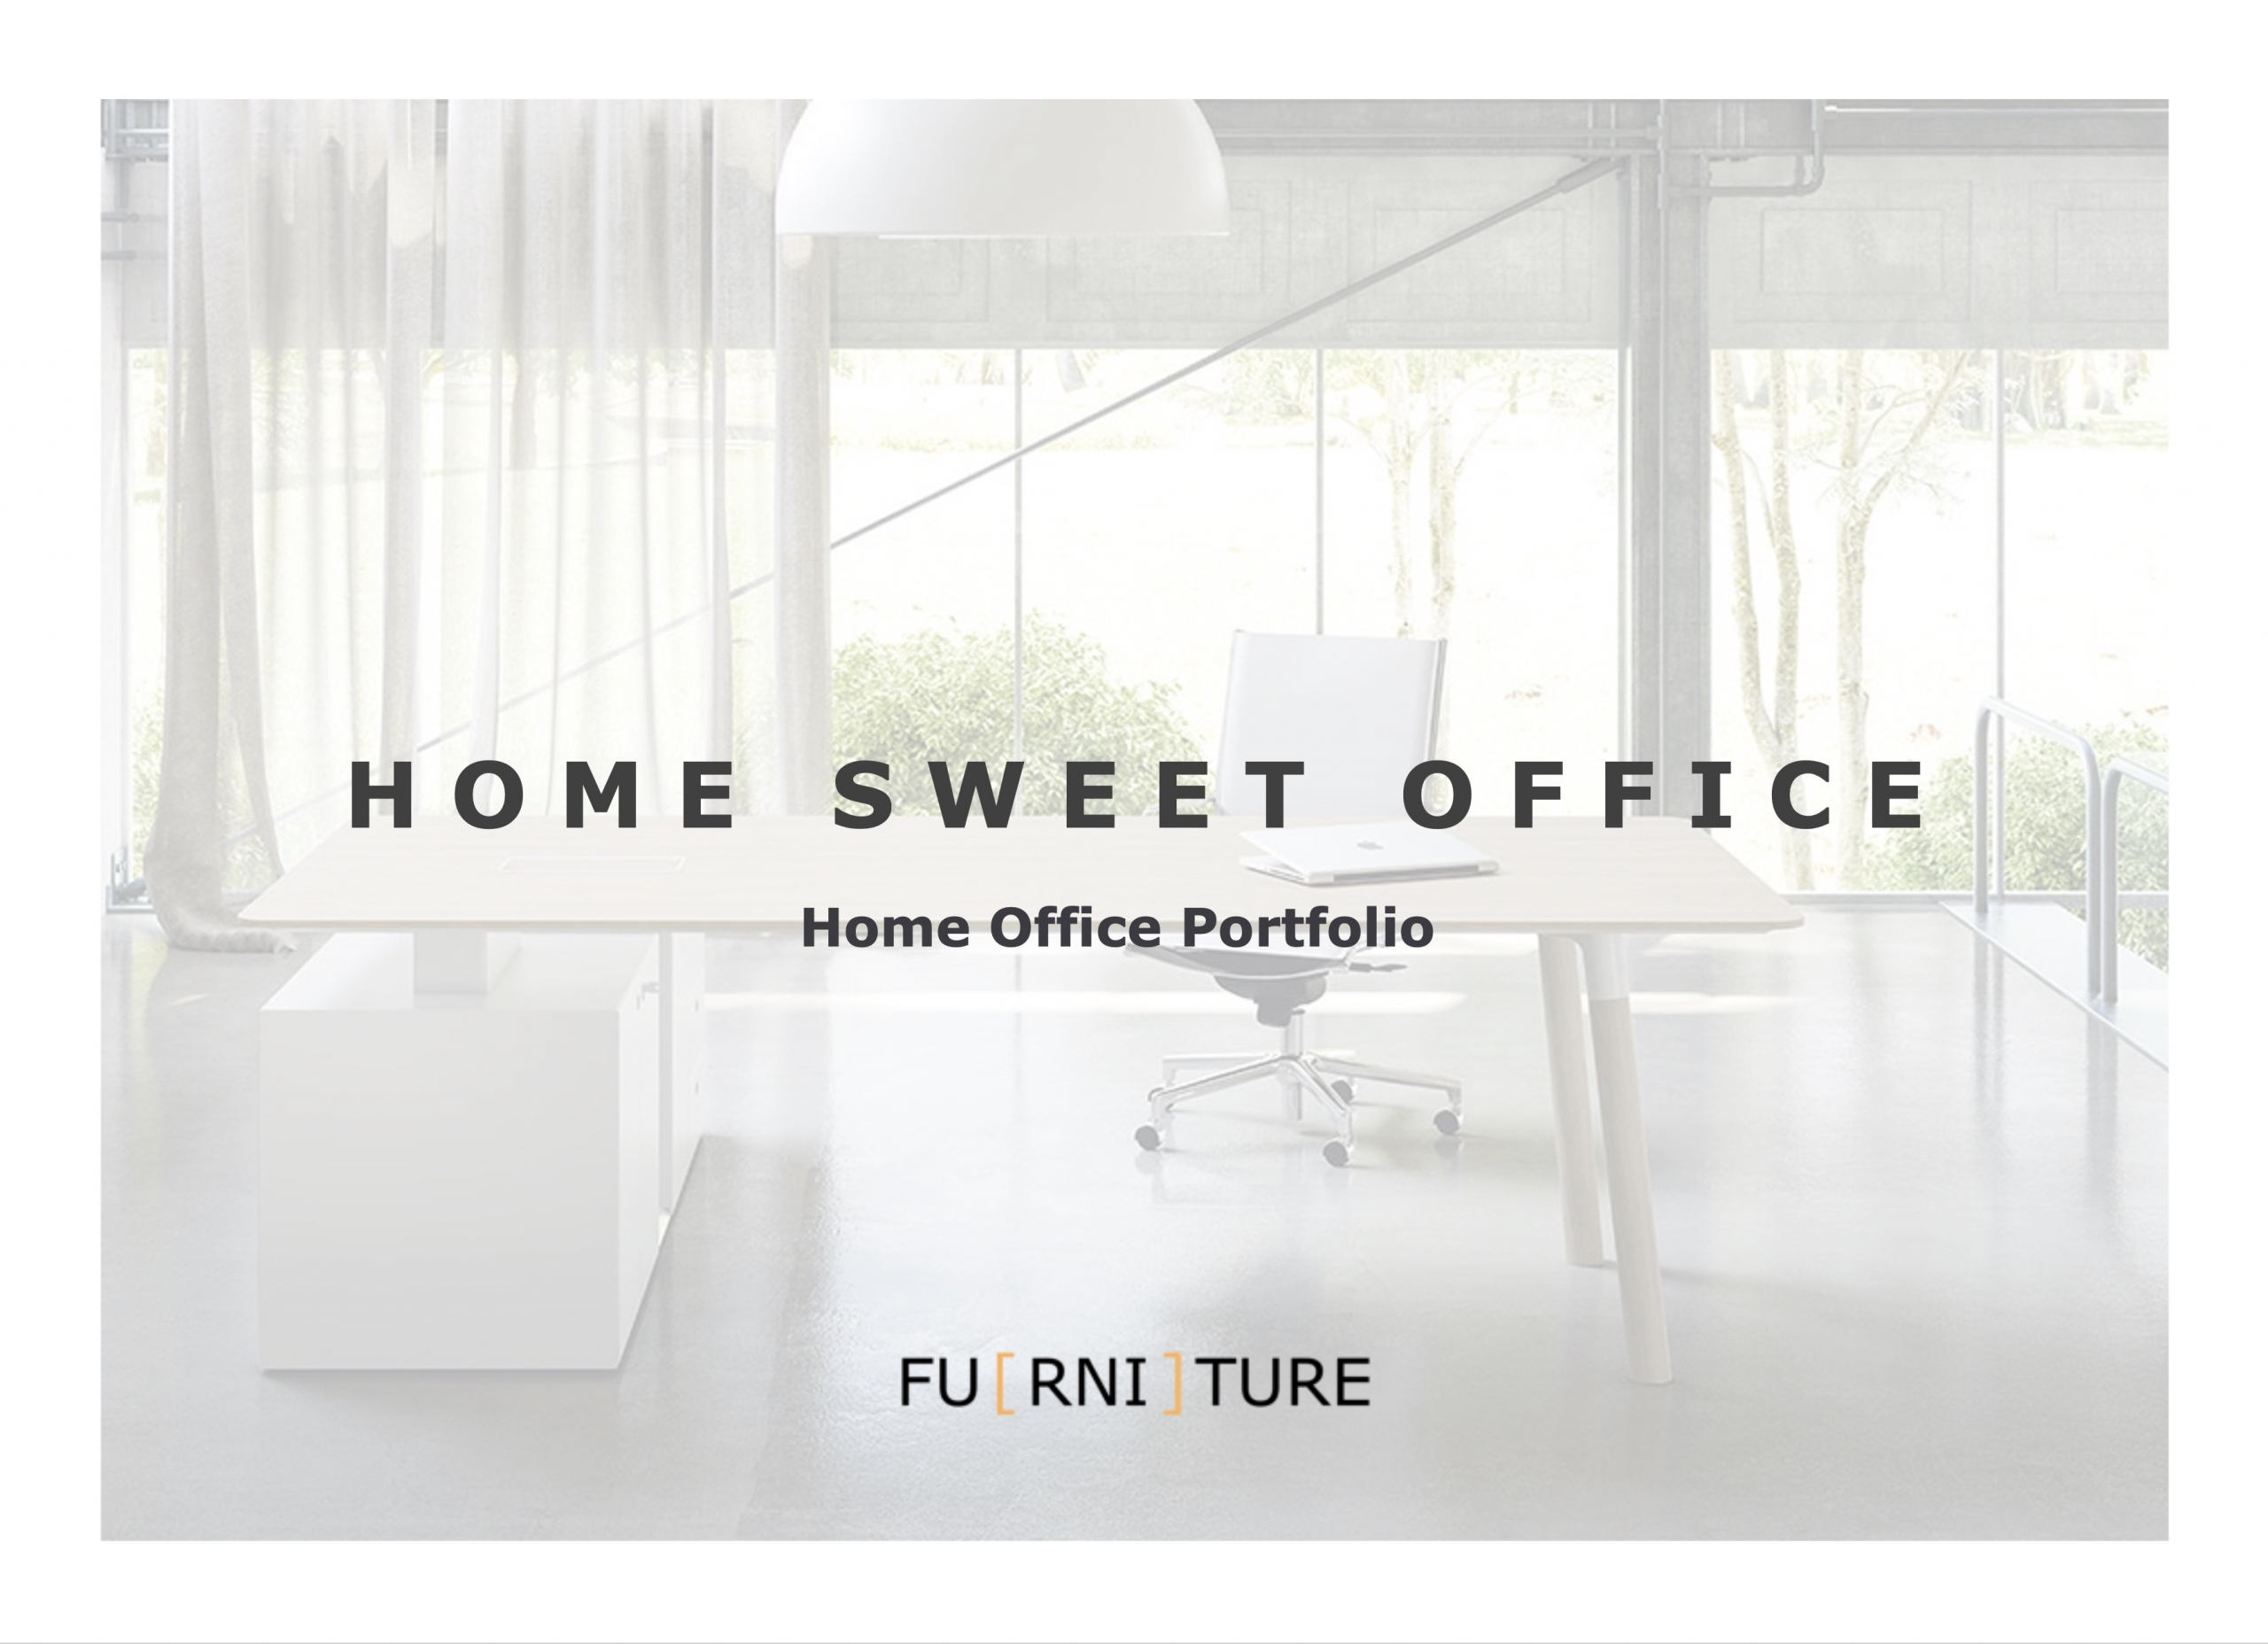 Furniture Future for the Home Office